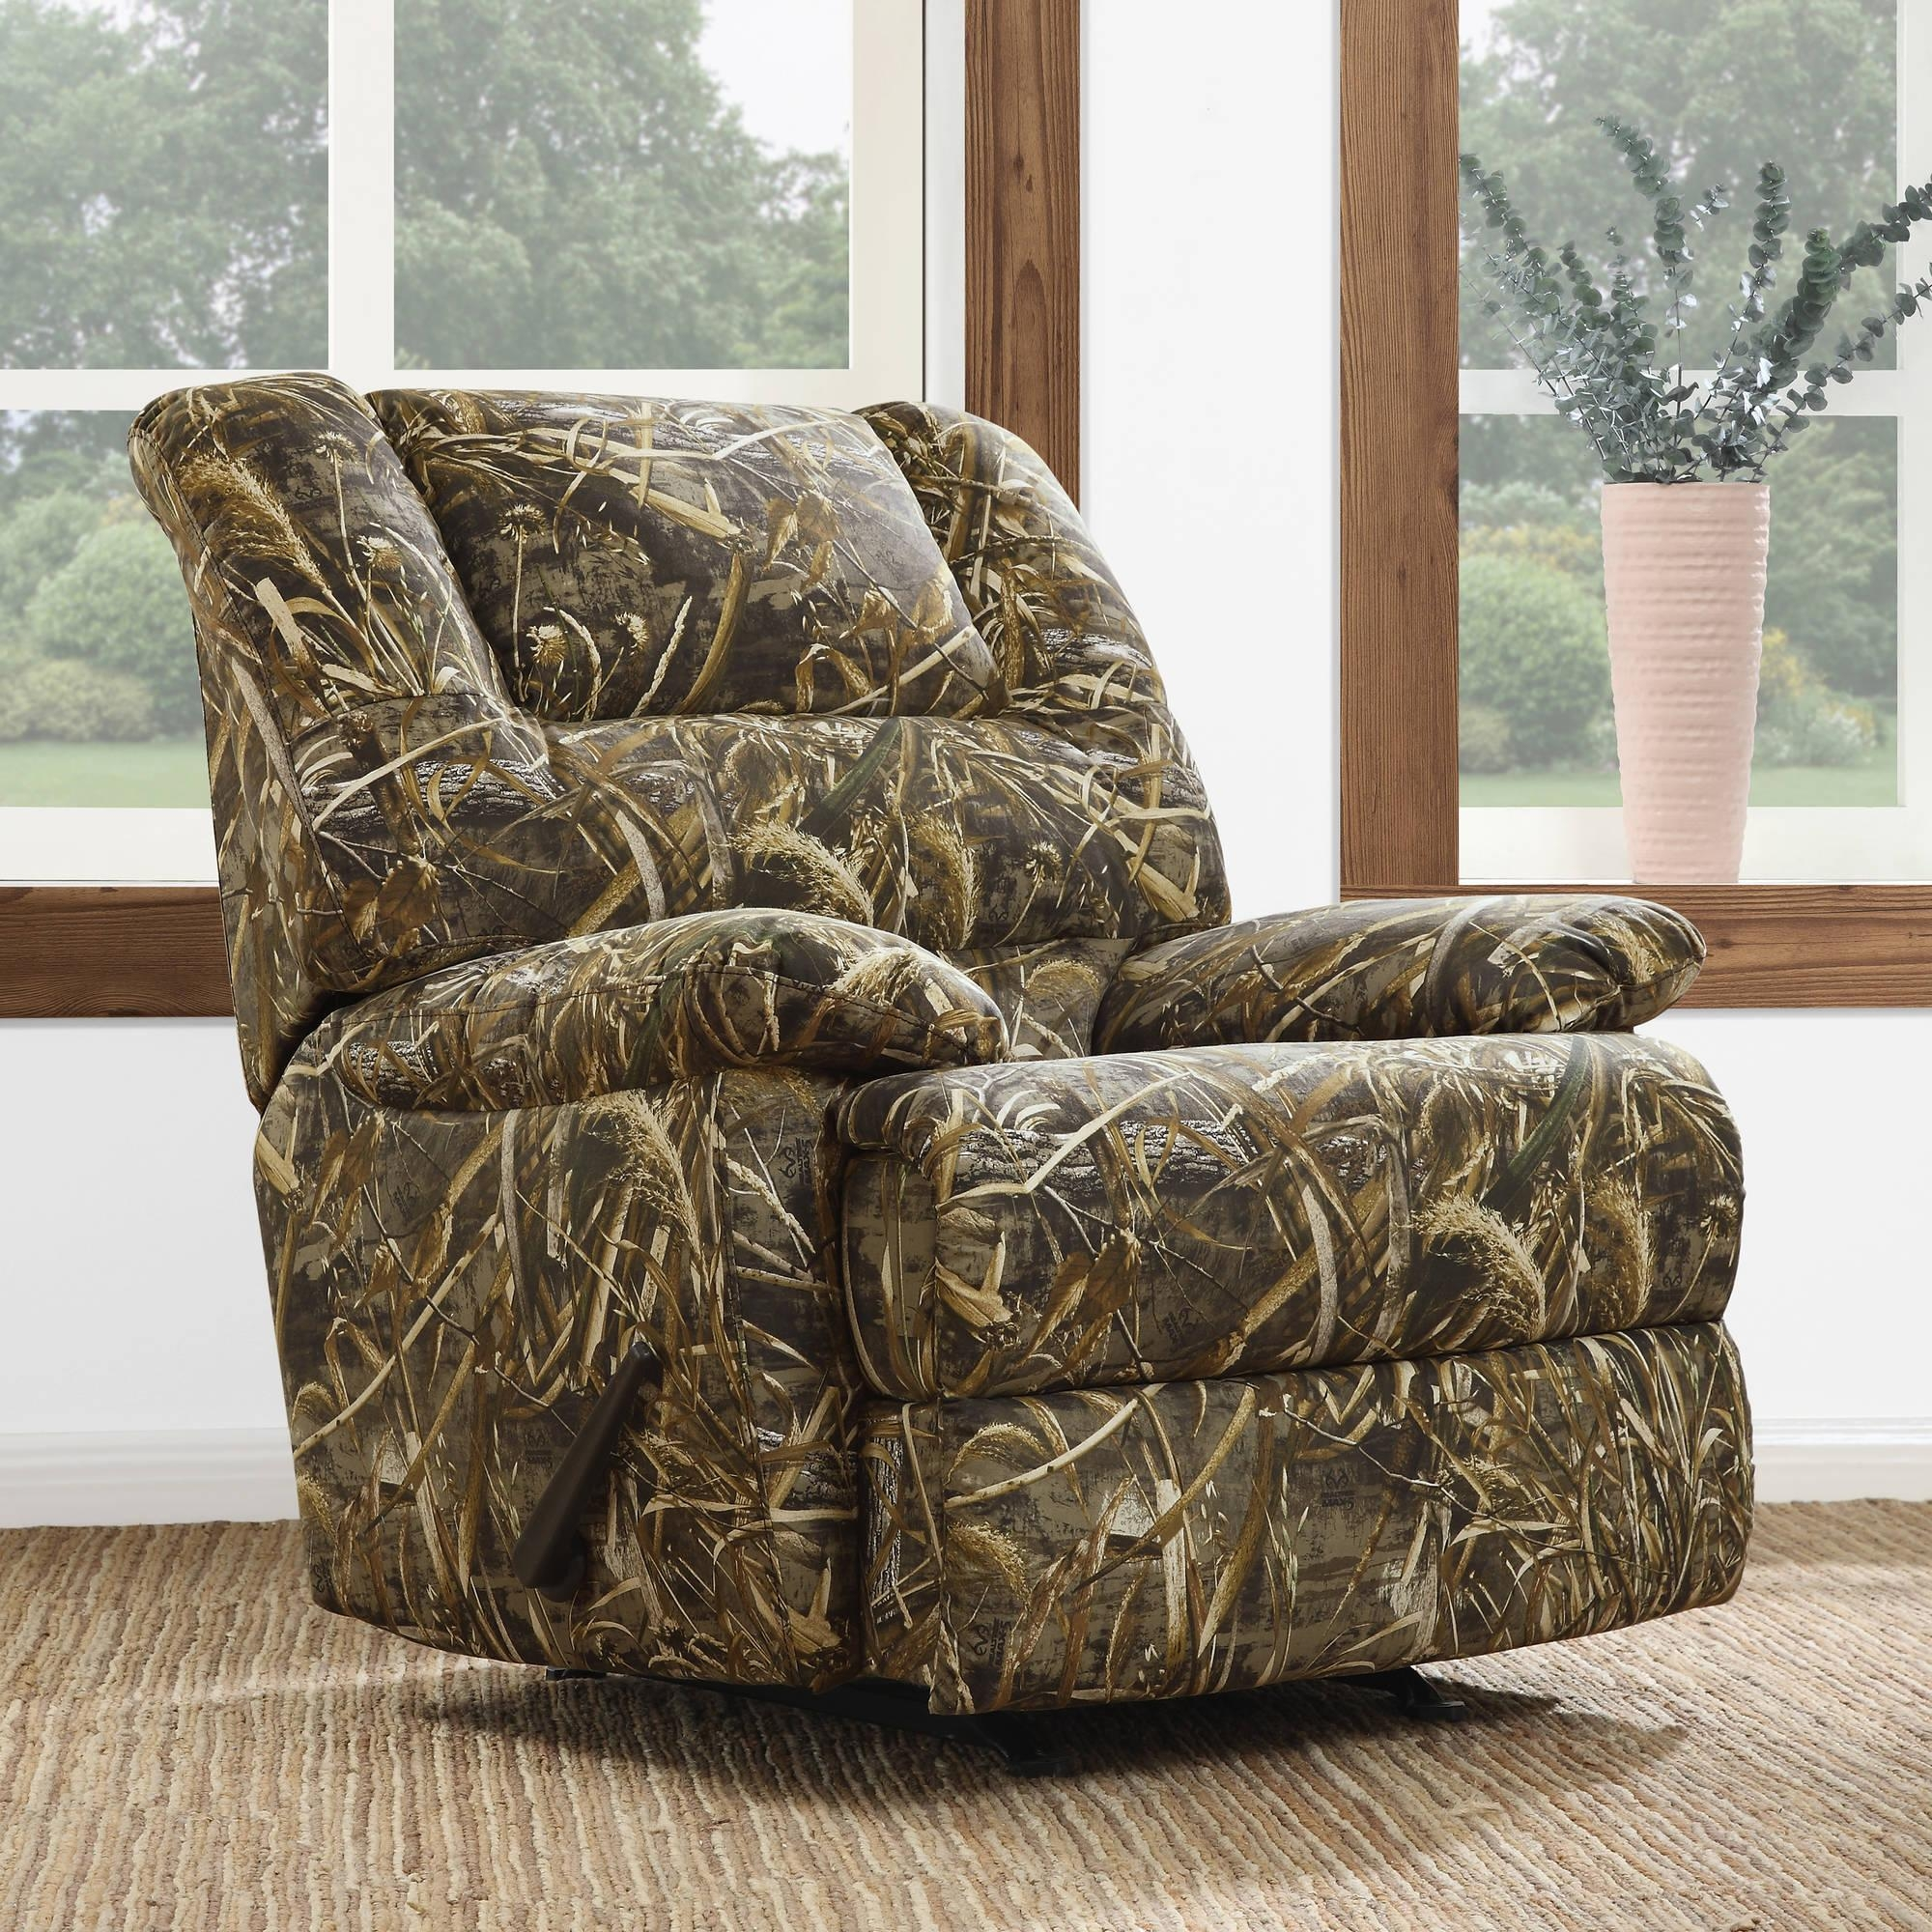 Dorel Living Realtree Camouflage Deluxe Recliner, Camo – Walmart Pertaining To Camo Reclining Sofas (Image 12 of 20)